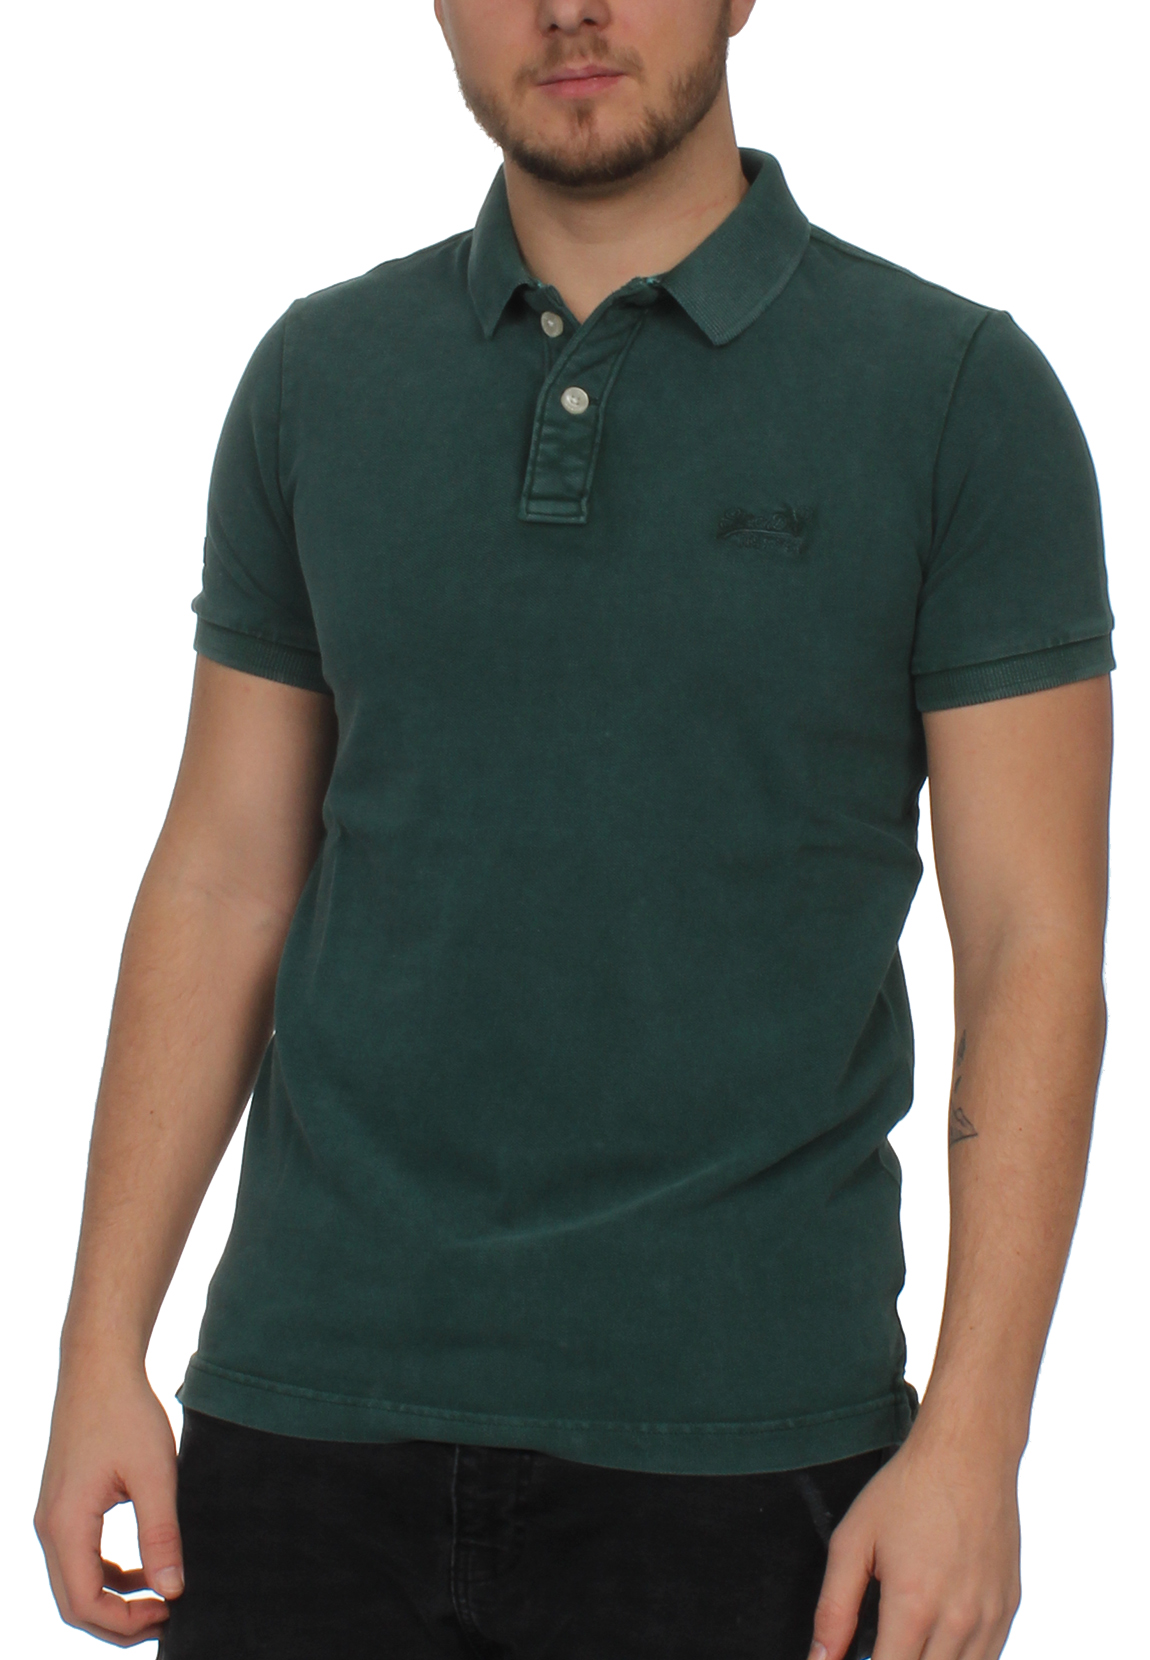 46949c8784d59f Superdry Mens Polo Vintage DESTROY SS Pique Polo Royal Green | eBay